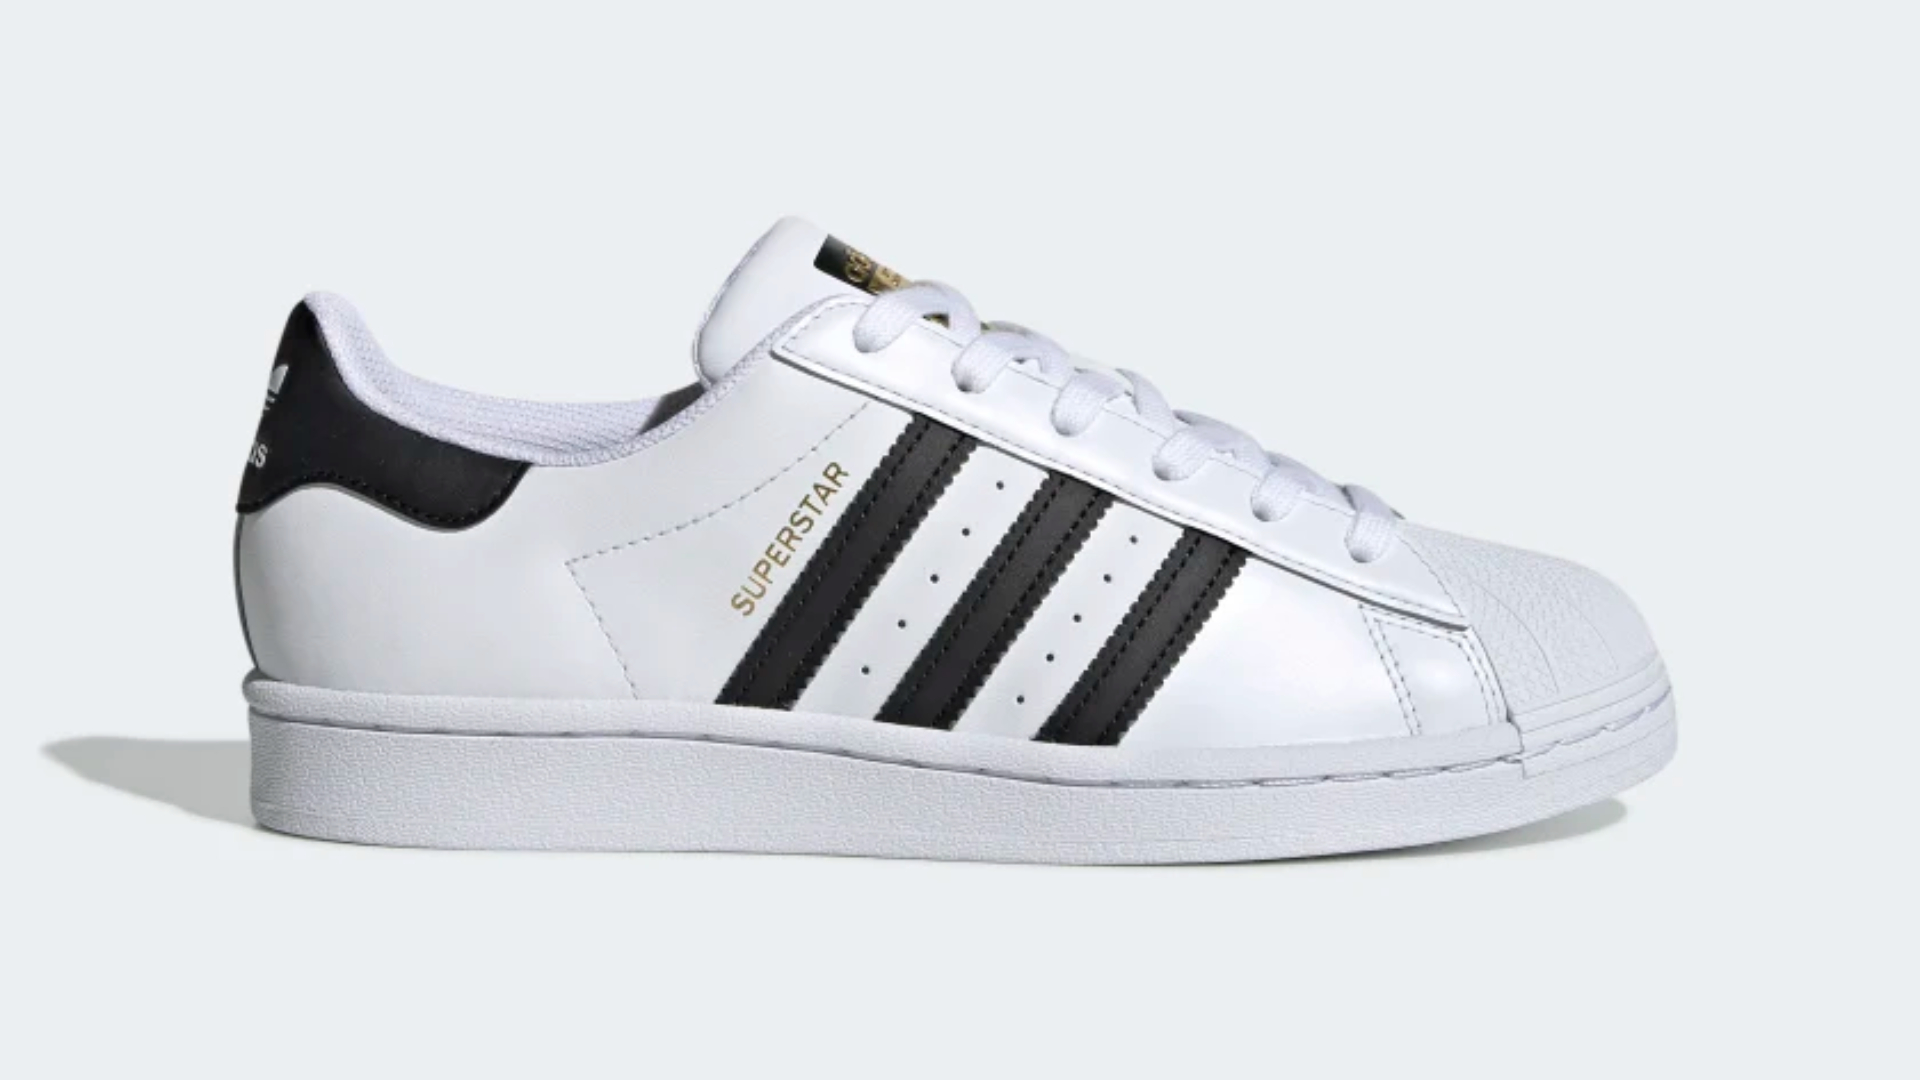 privado Belicoso Demon Play  Best Adidas shoes 2020: great Adidas trainers for style and sport